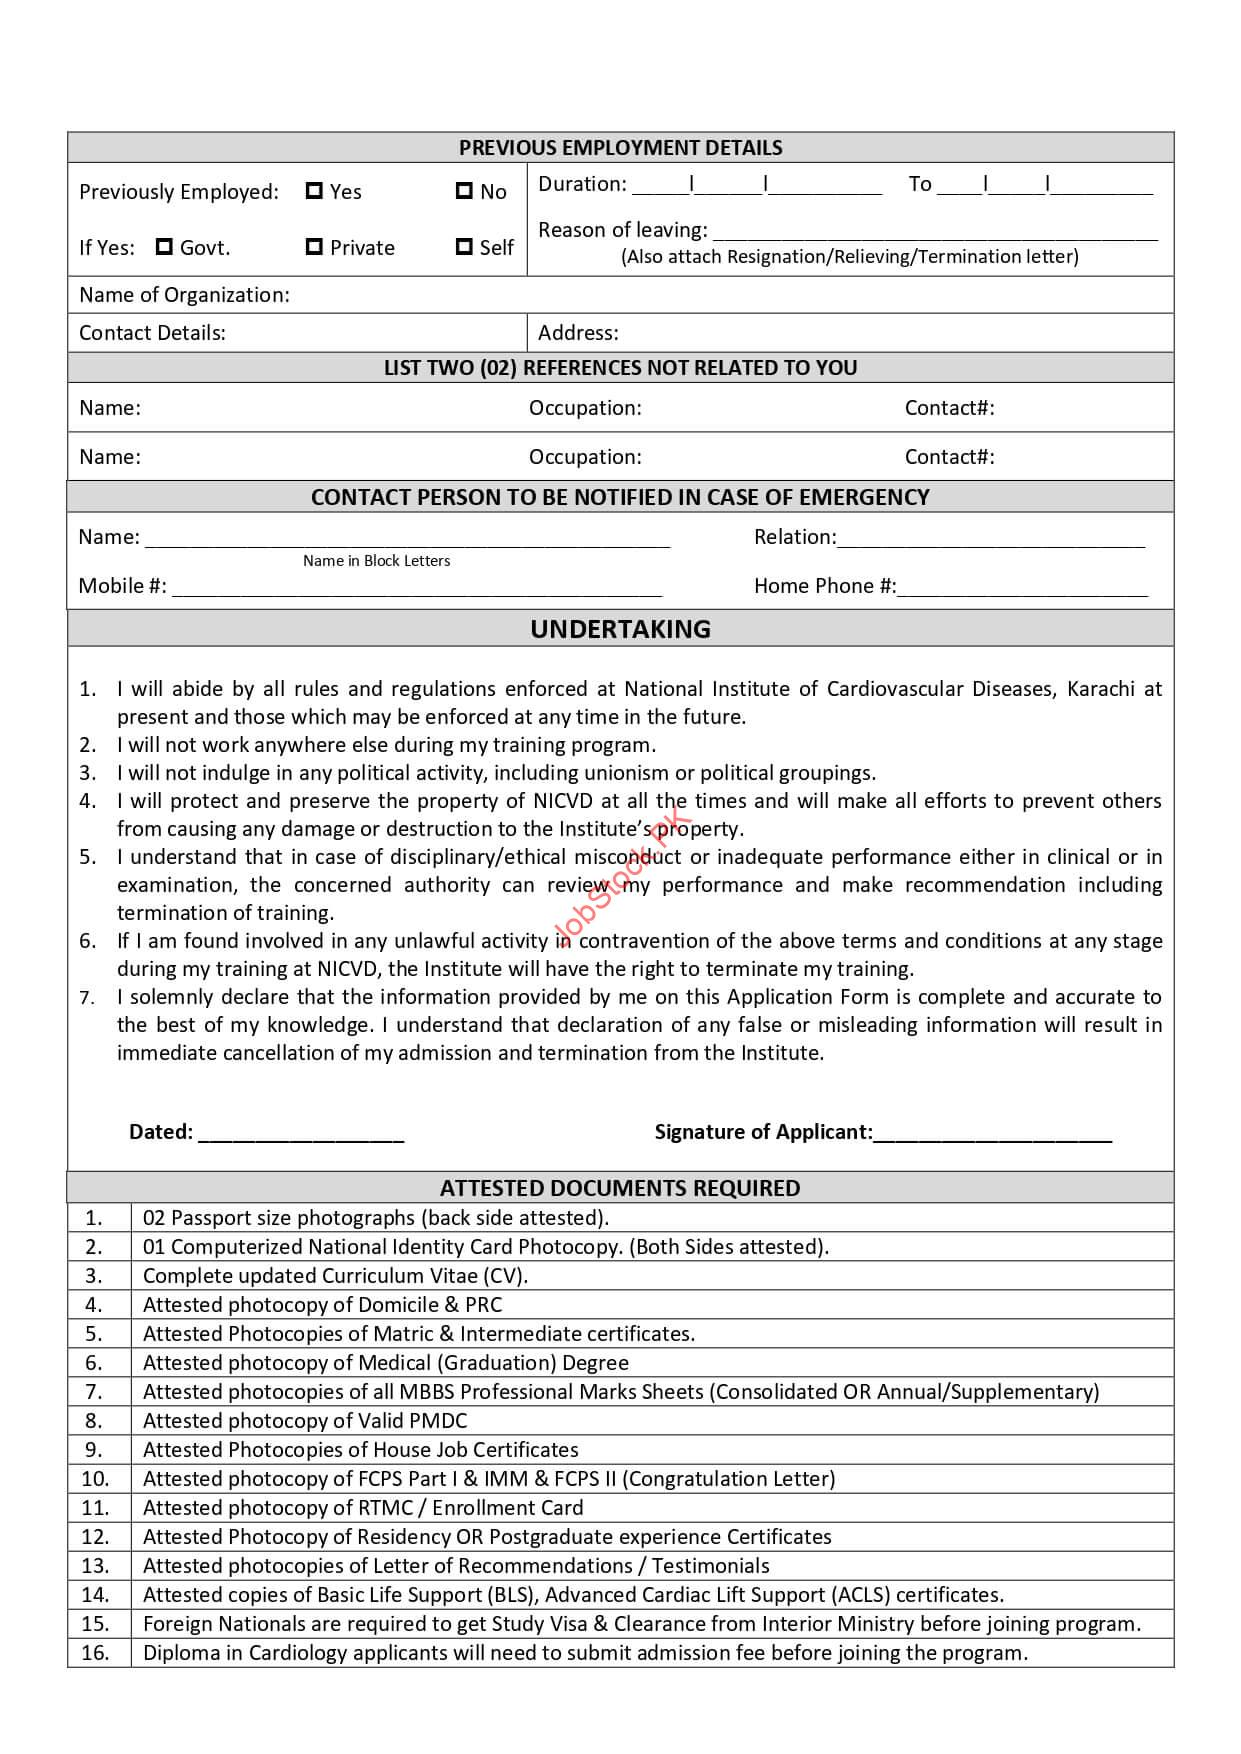 Nicvd.org Application Form Download Page 2